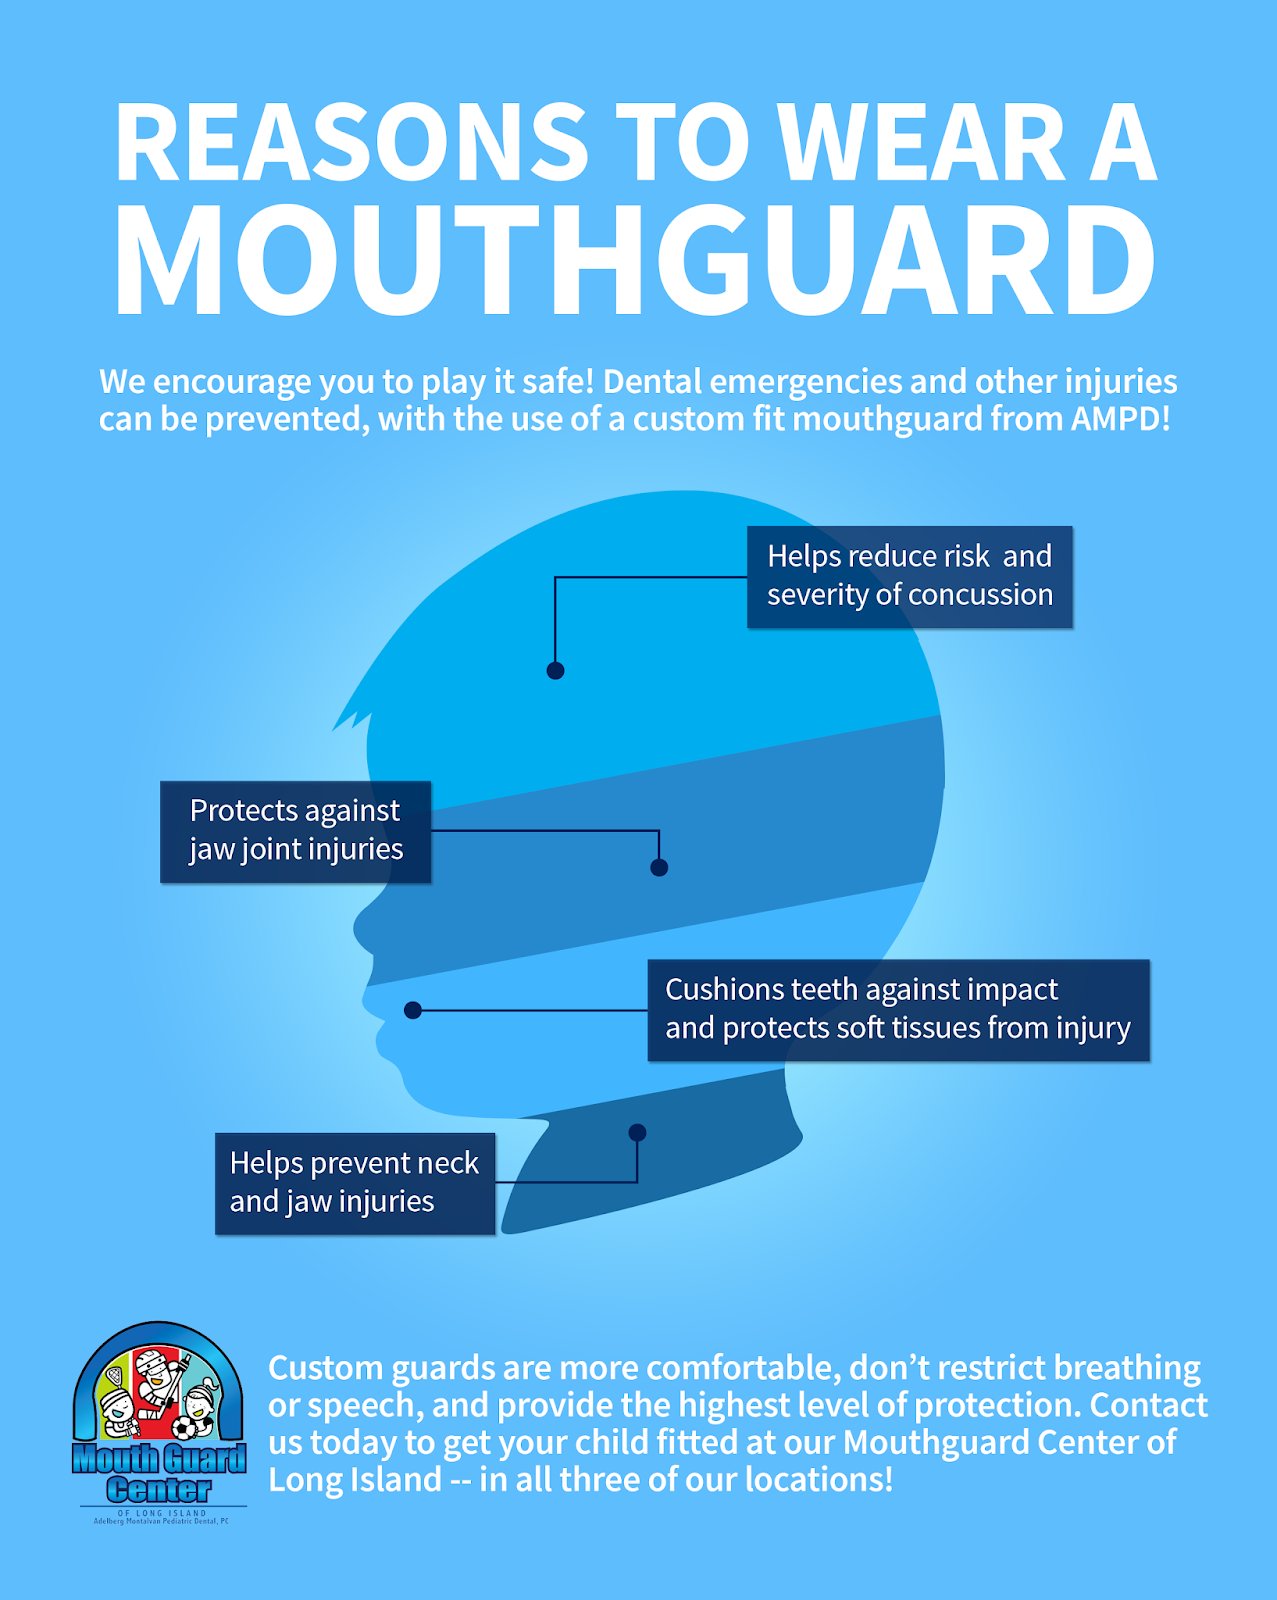 AMPD-Mouthguard%2BInfographic.png